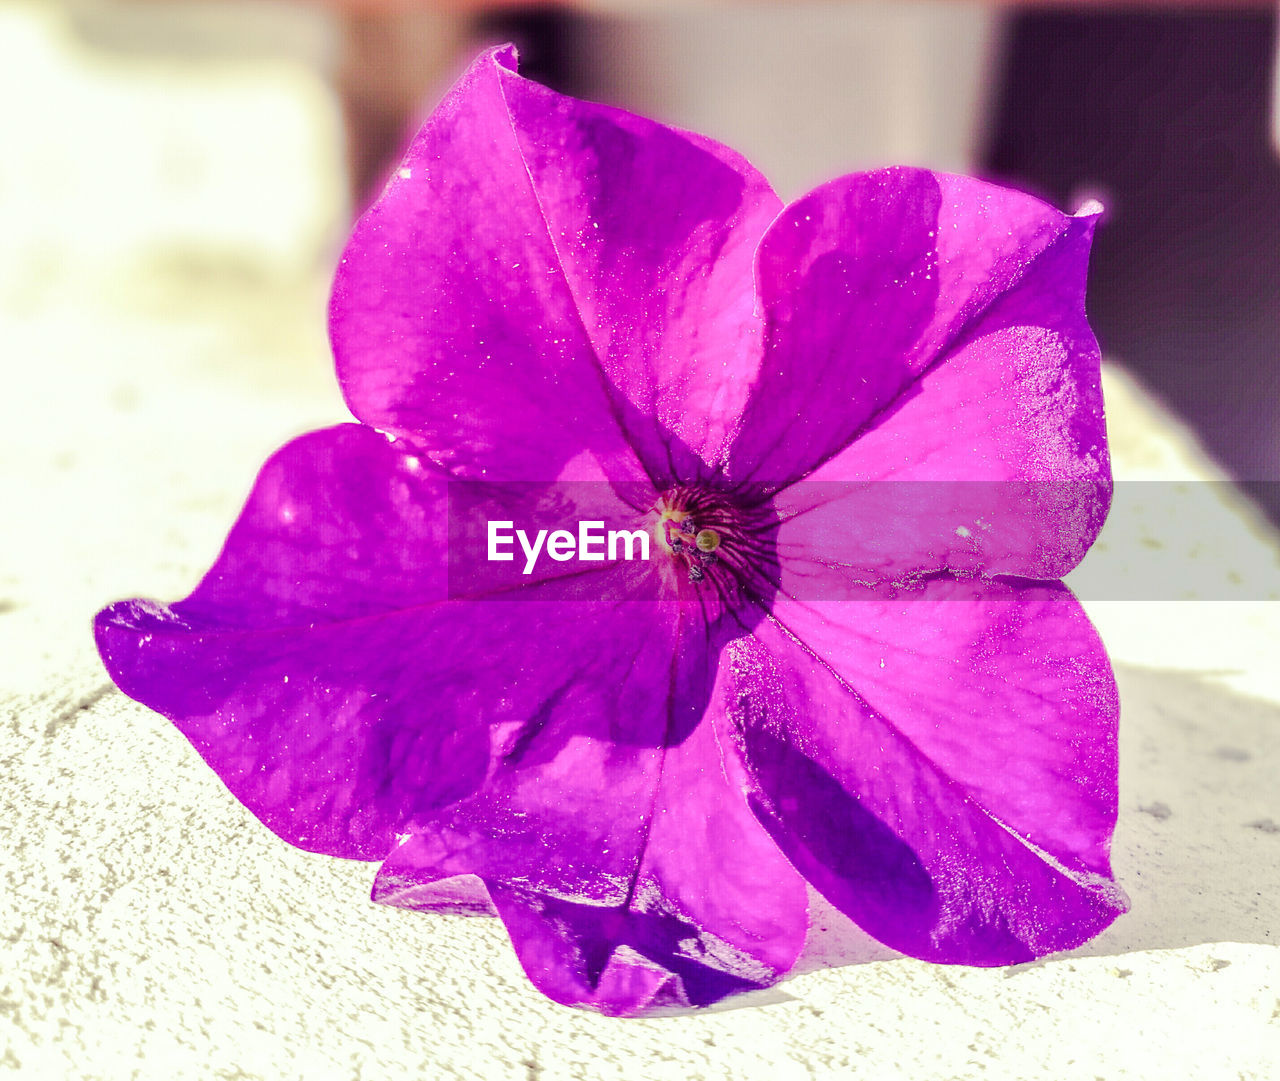 flower, petal, fragility, beauty in nature, nature, flower head, outdoors, day, no people, purple, close-up, freshness